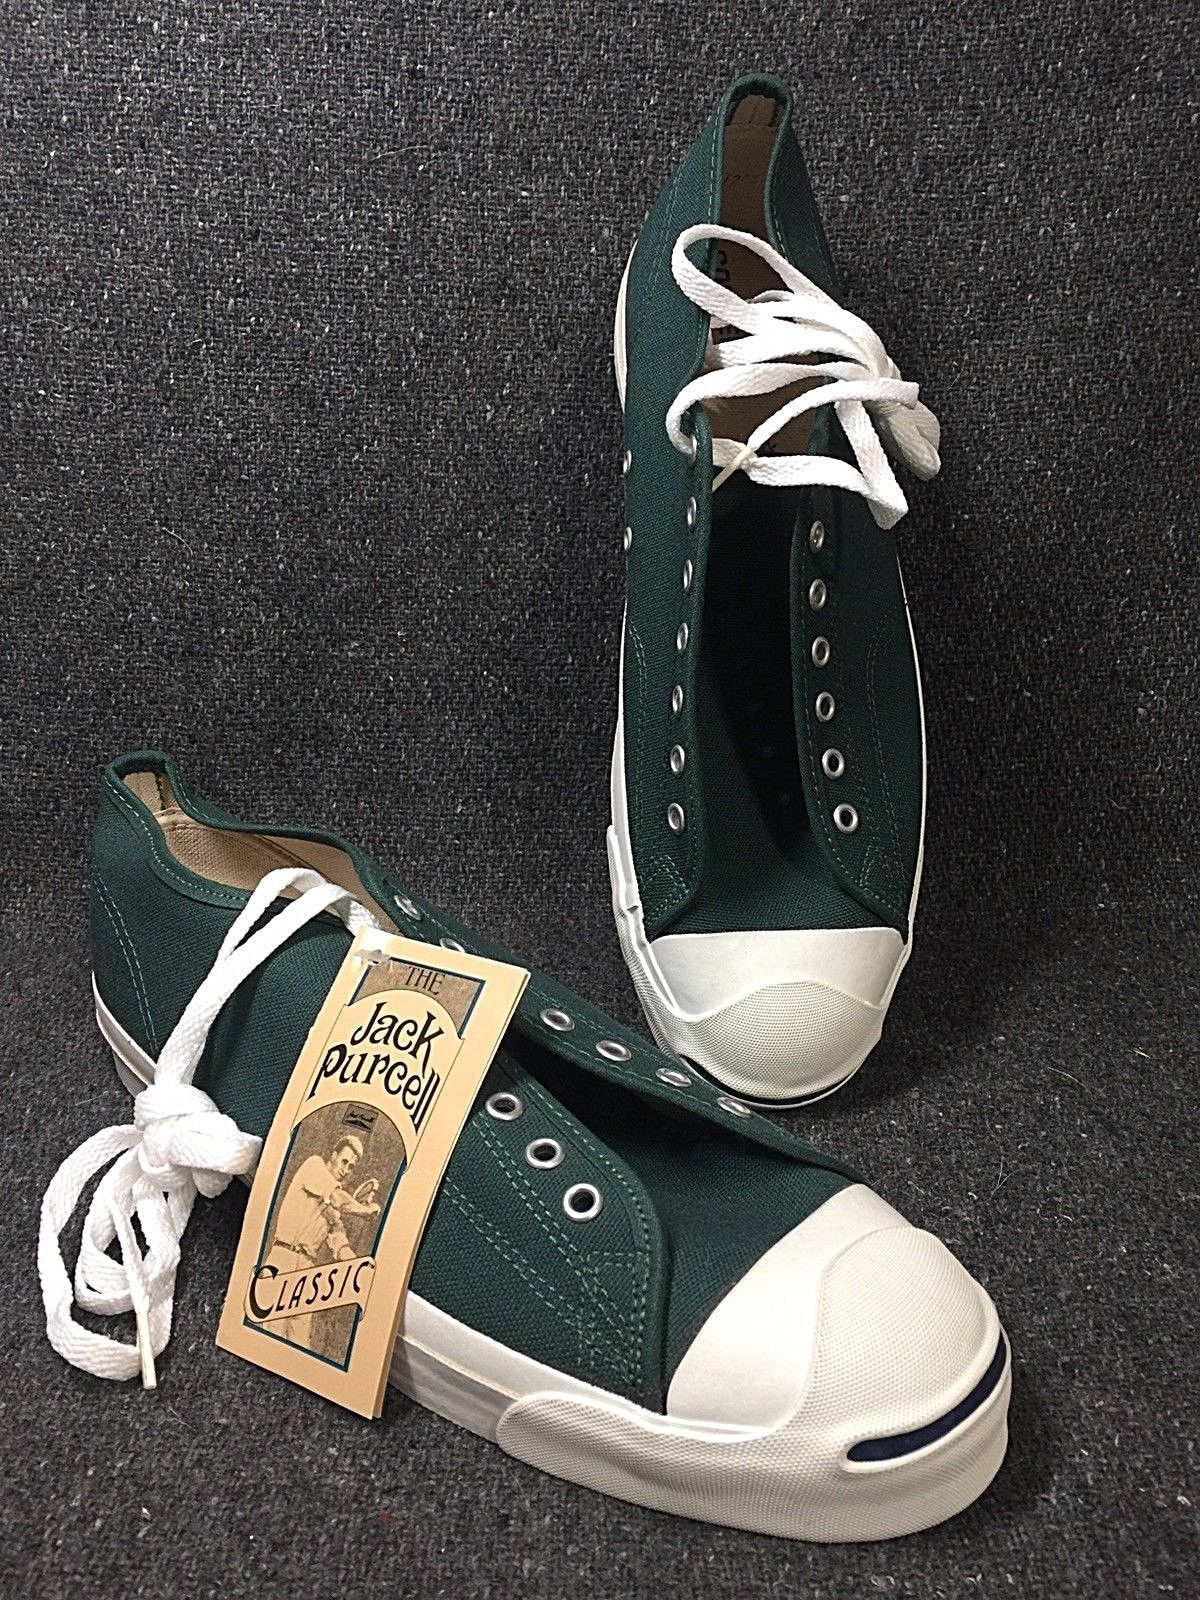 c3d0a063febf Details about Vintage Converse Jack Purcell 70 s 80 s AUTHENTIC MADE ...